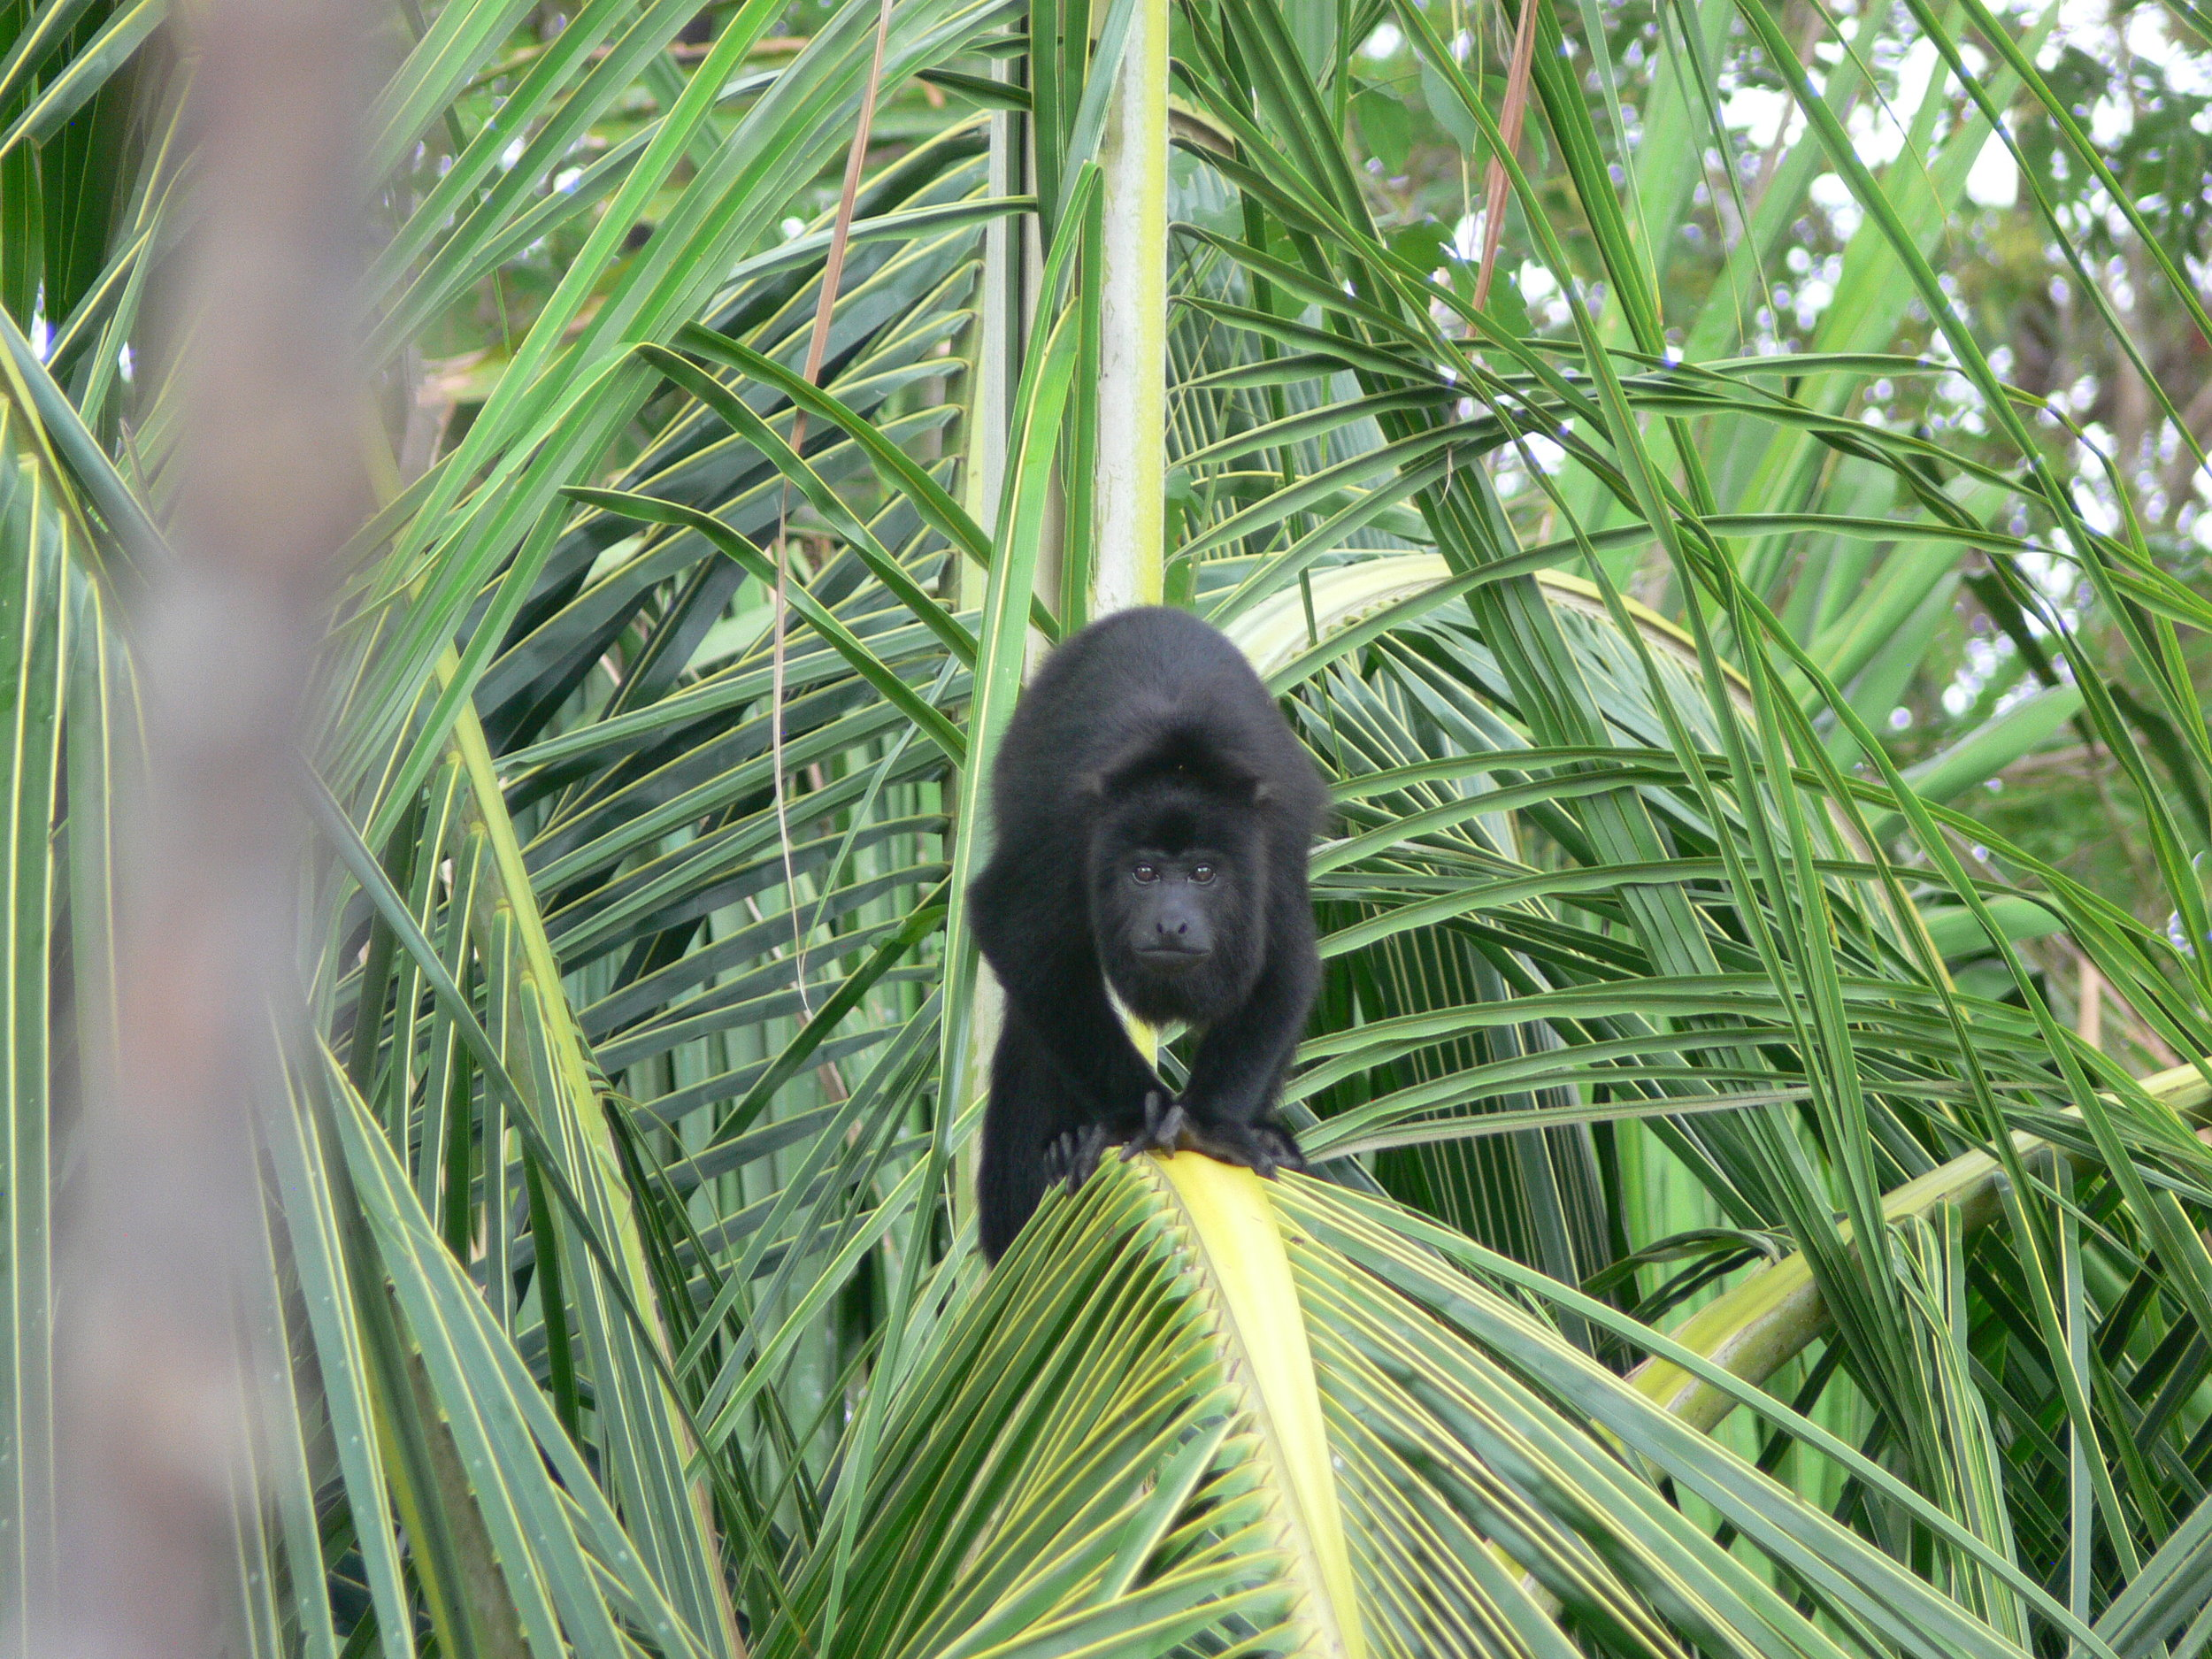 Alouatta pigra , the Central American Black Howler monkey, in Belize.